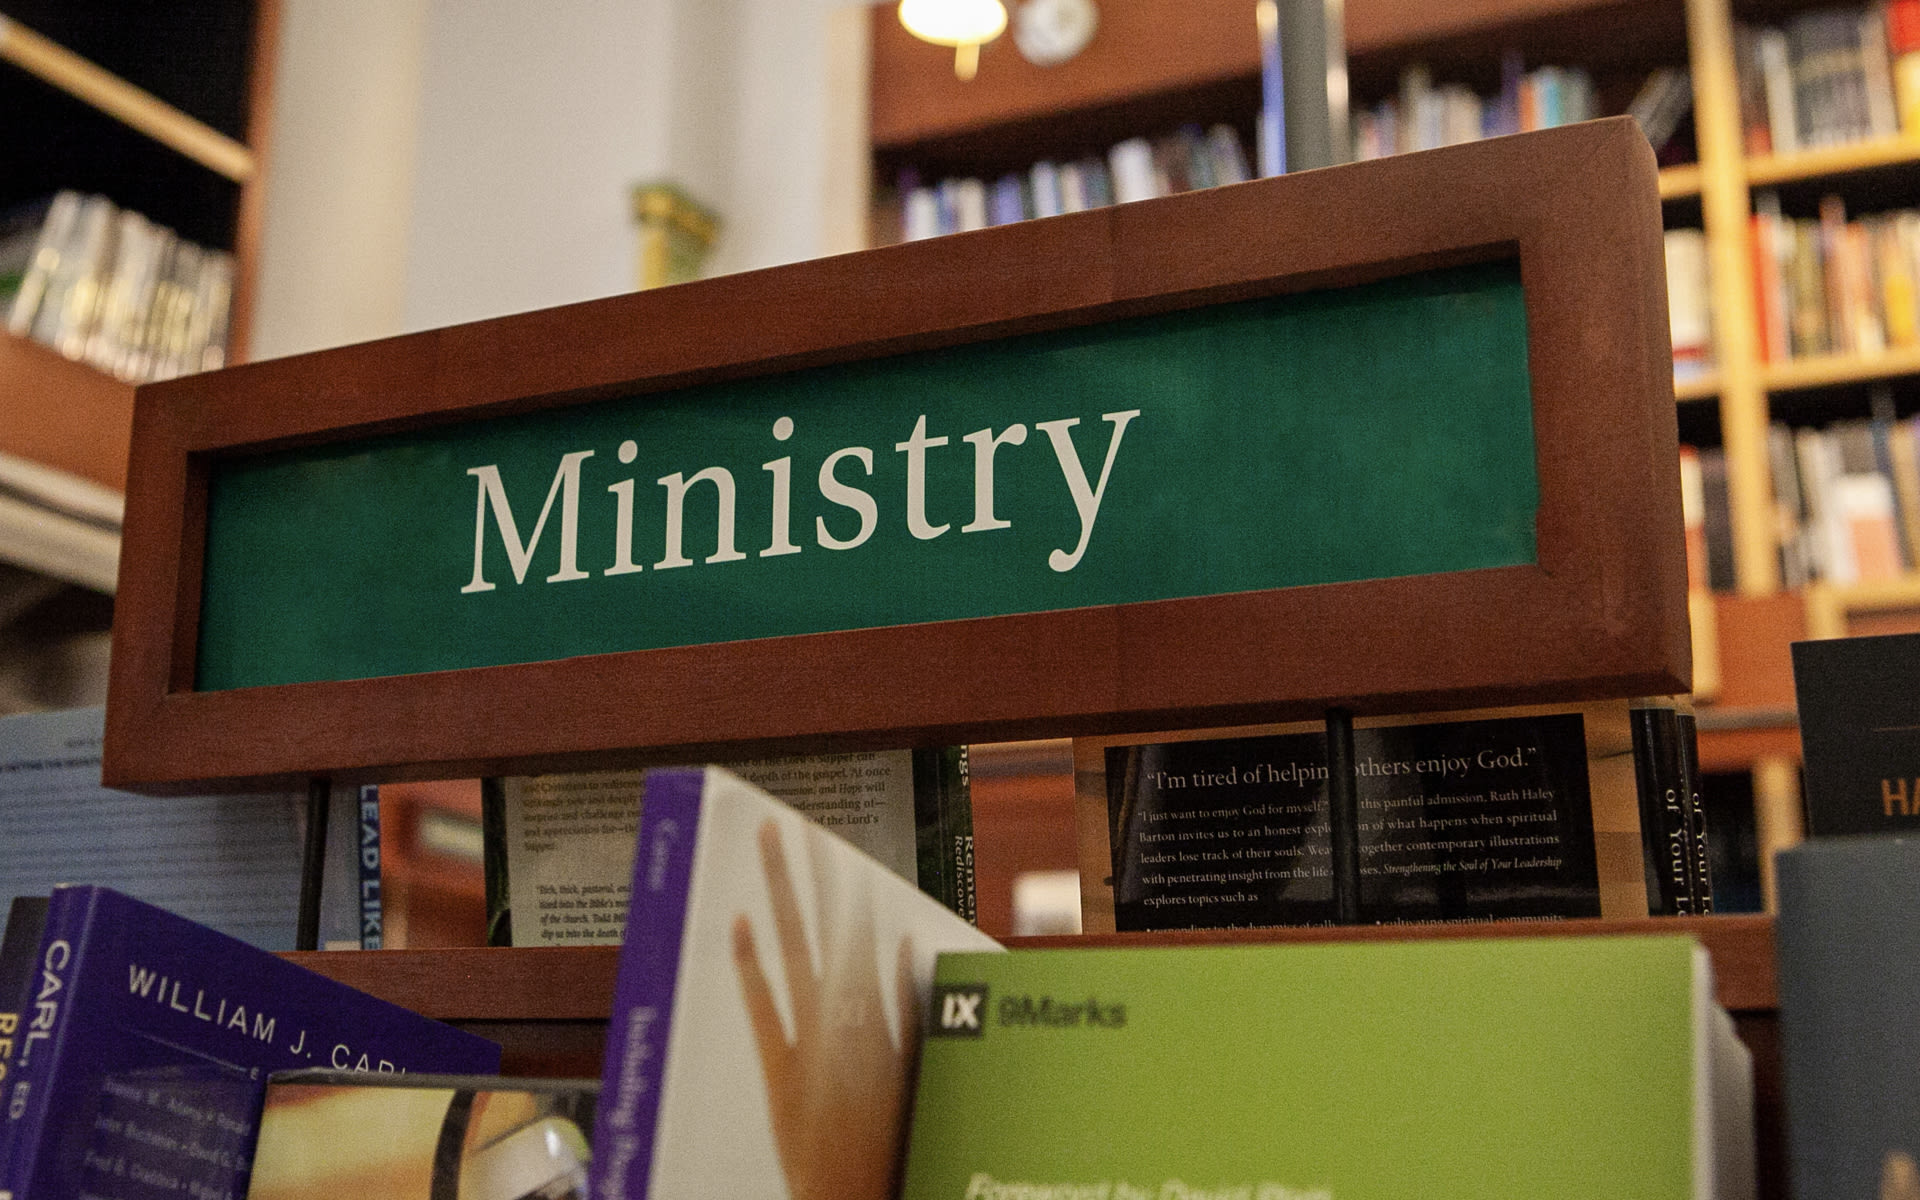 ministry sign in the bookstore